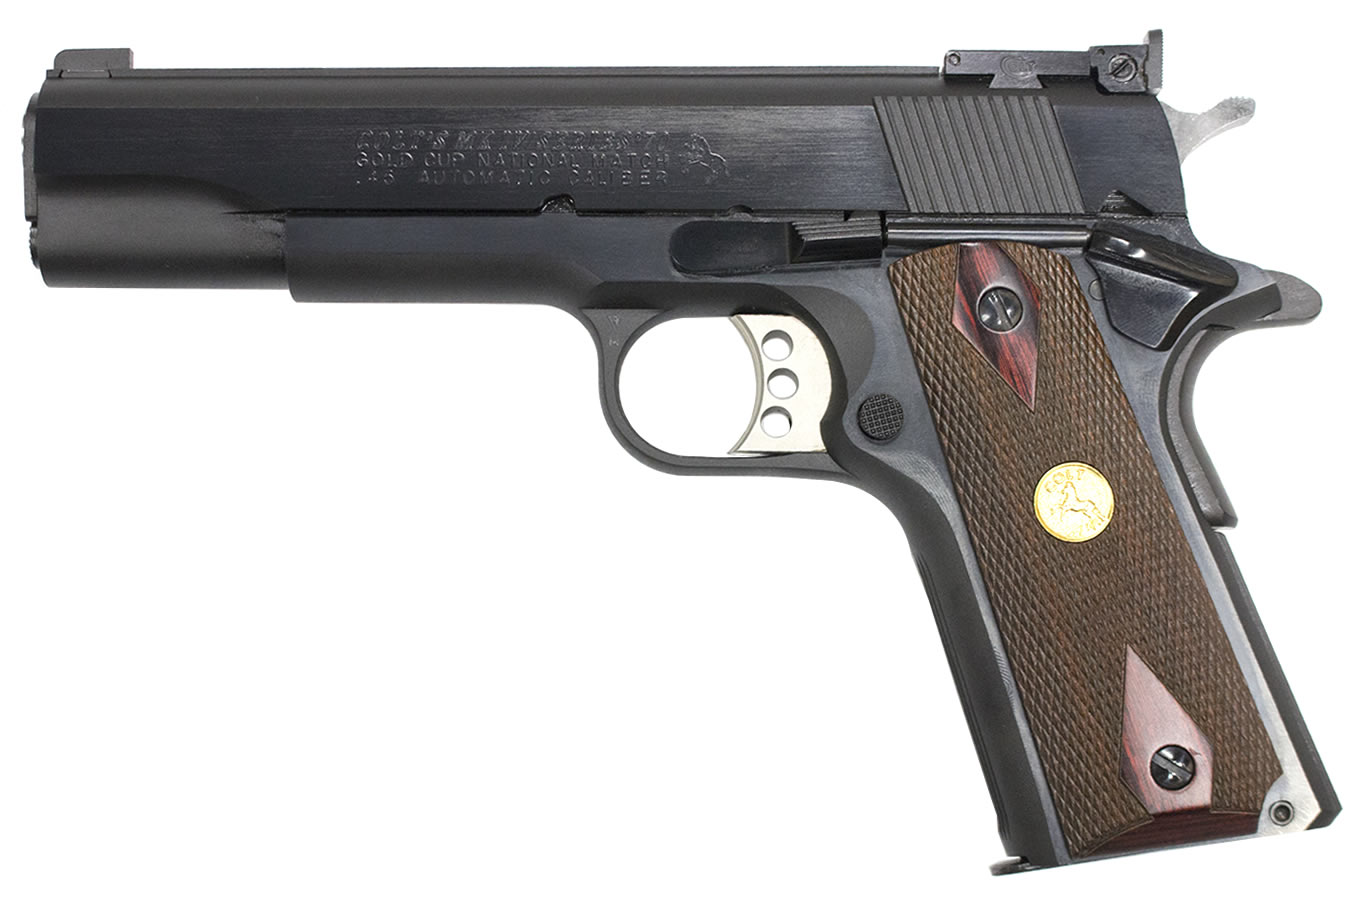 1911 NATIONAL MATCH GOLD CUP 45 ACP